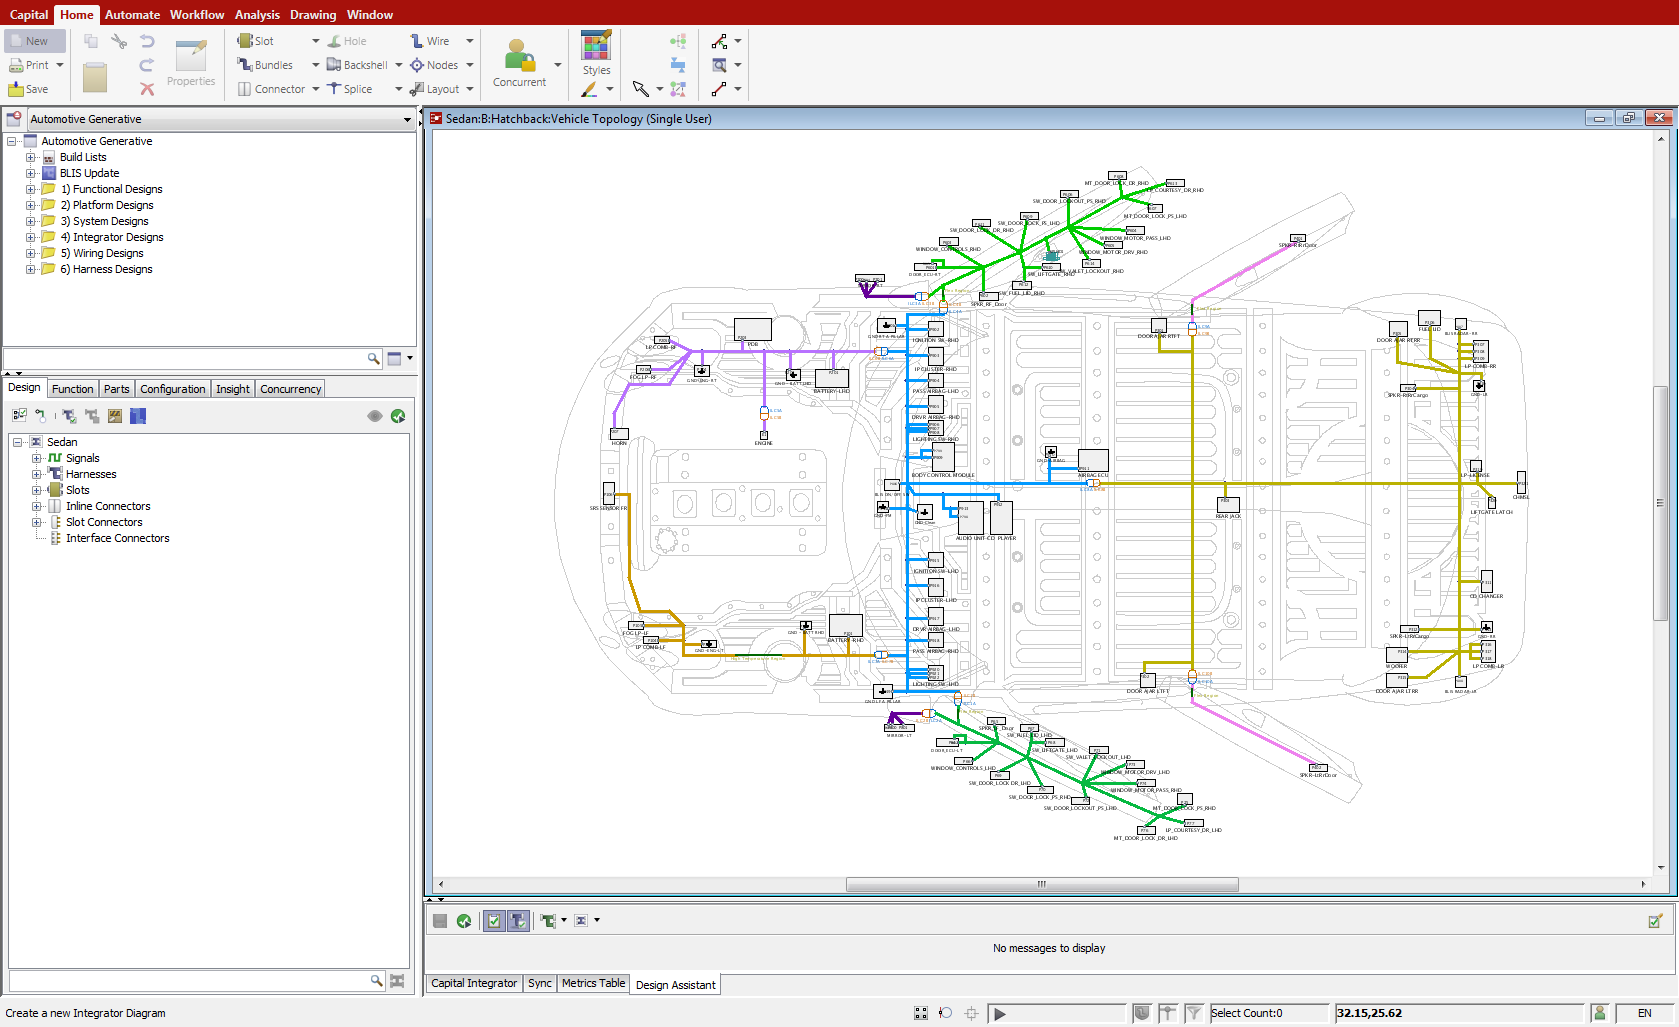 capital integrator-electrical design automation